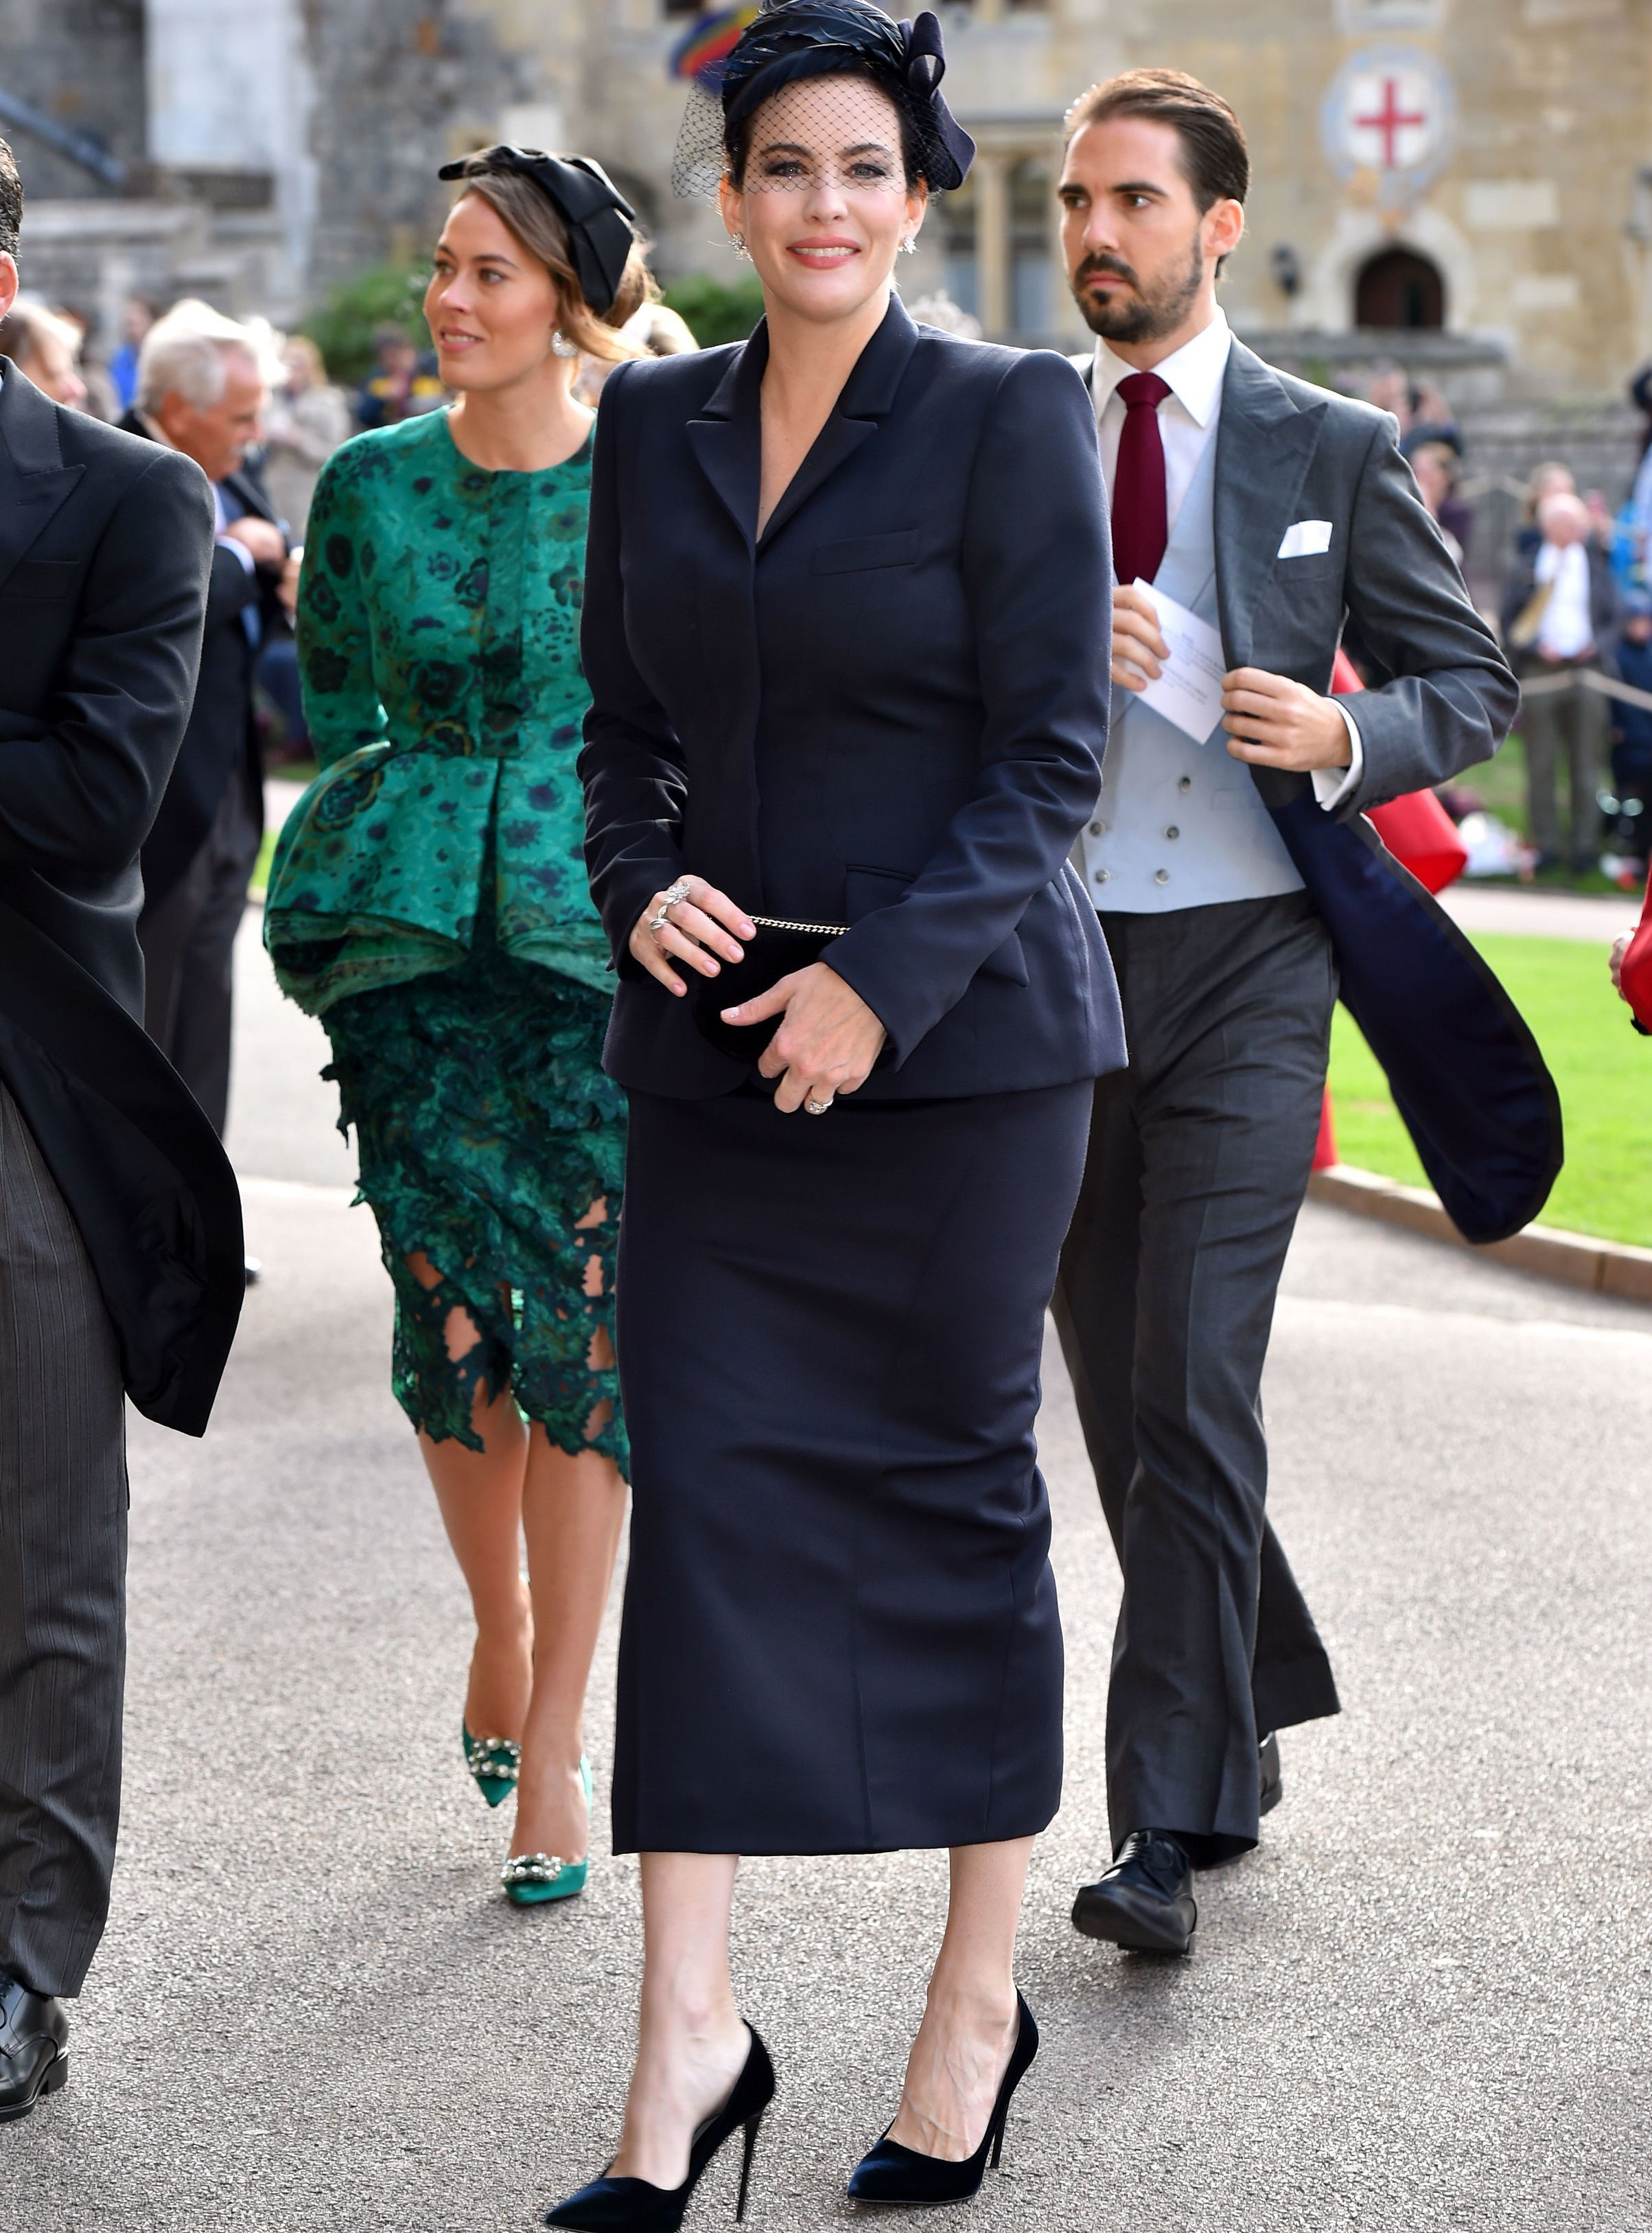 Every Celebrity Guest At Princess Eugenie Jack Brooksbank S Royal Wedding Royal Wedding Guests Outfits Eugenie Wedding Wedding Guest Outfit [ 3253 x 2407 Pixel ]